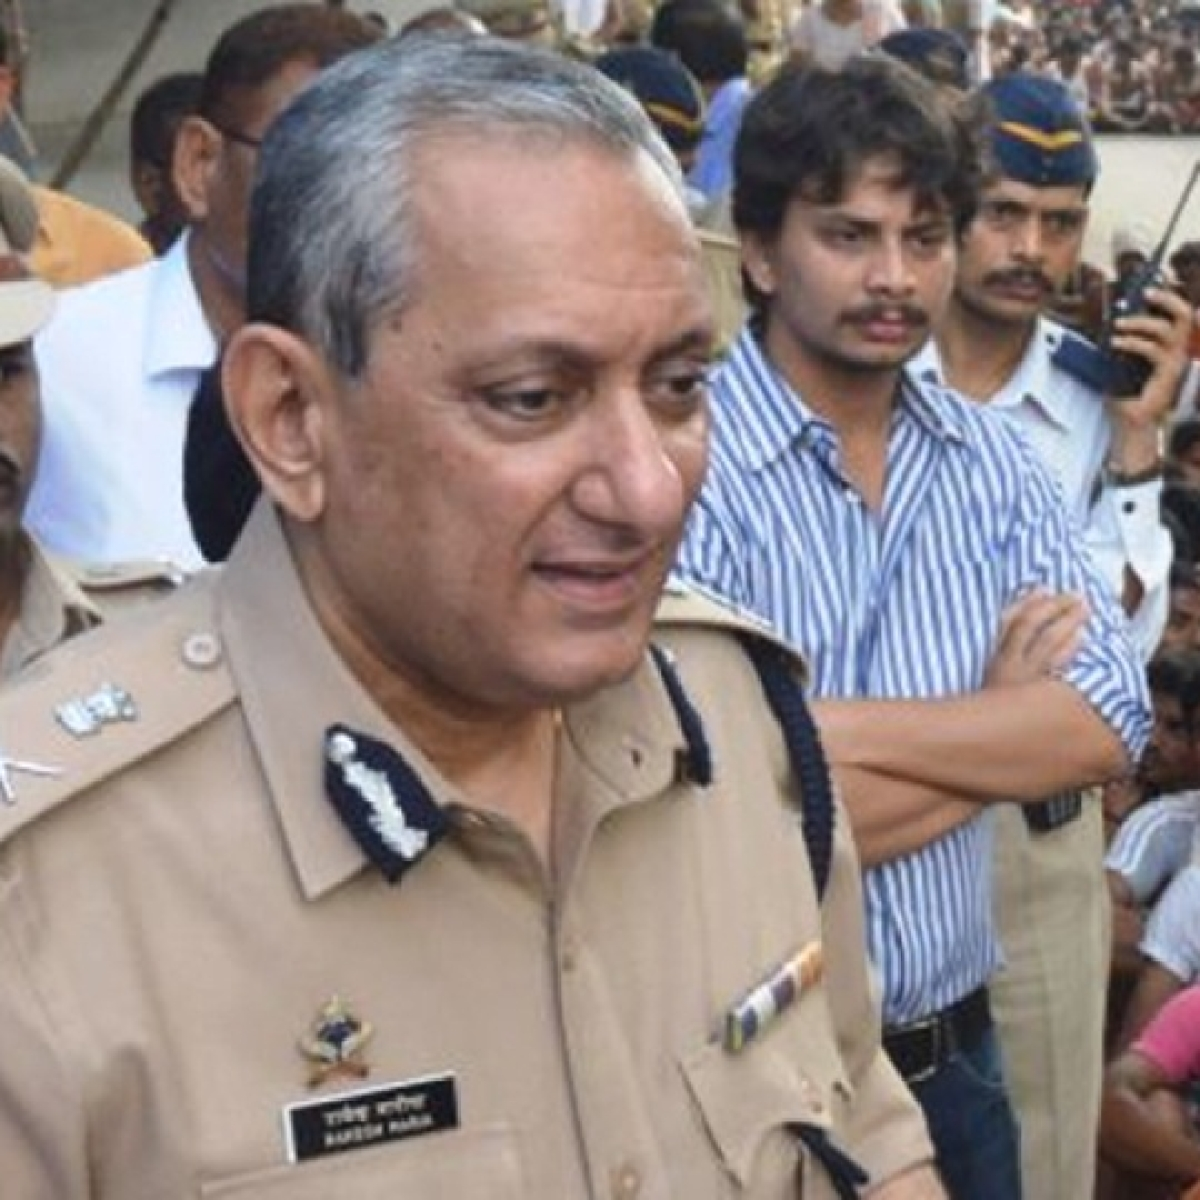 'LeT had planned for Ajmal Kasab to die as Bengaluru's Samir Chaudhari': Rakesh Maria in his book